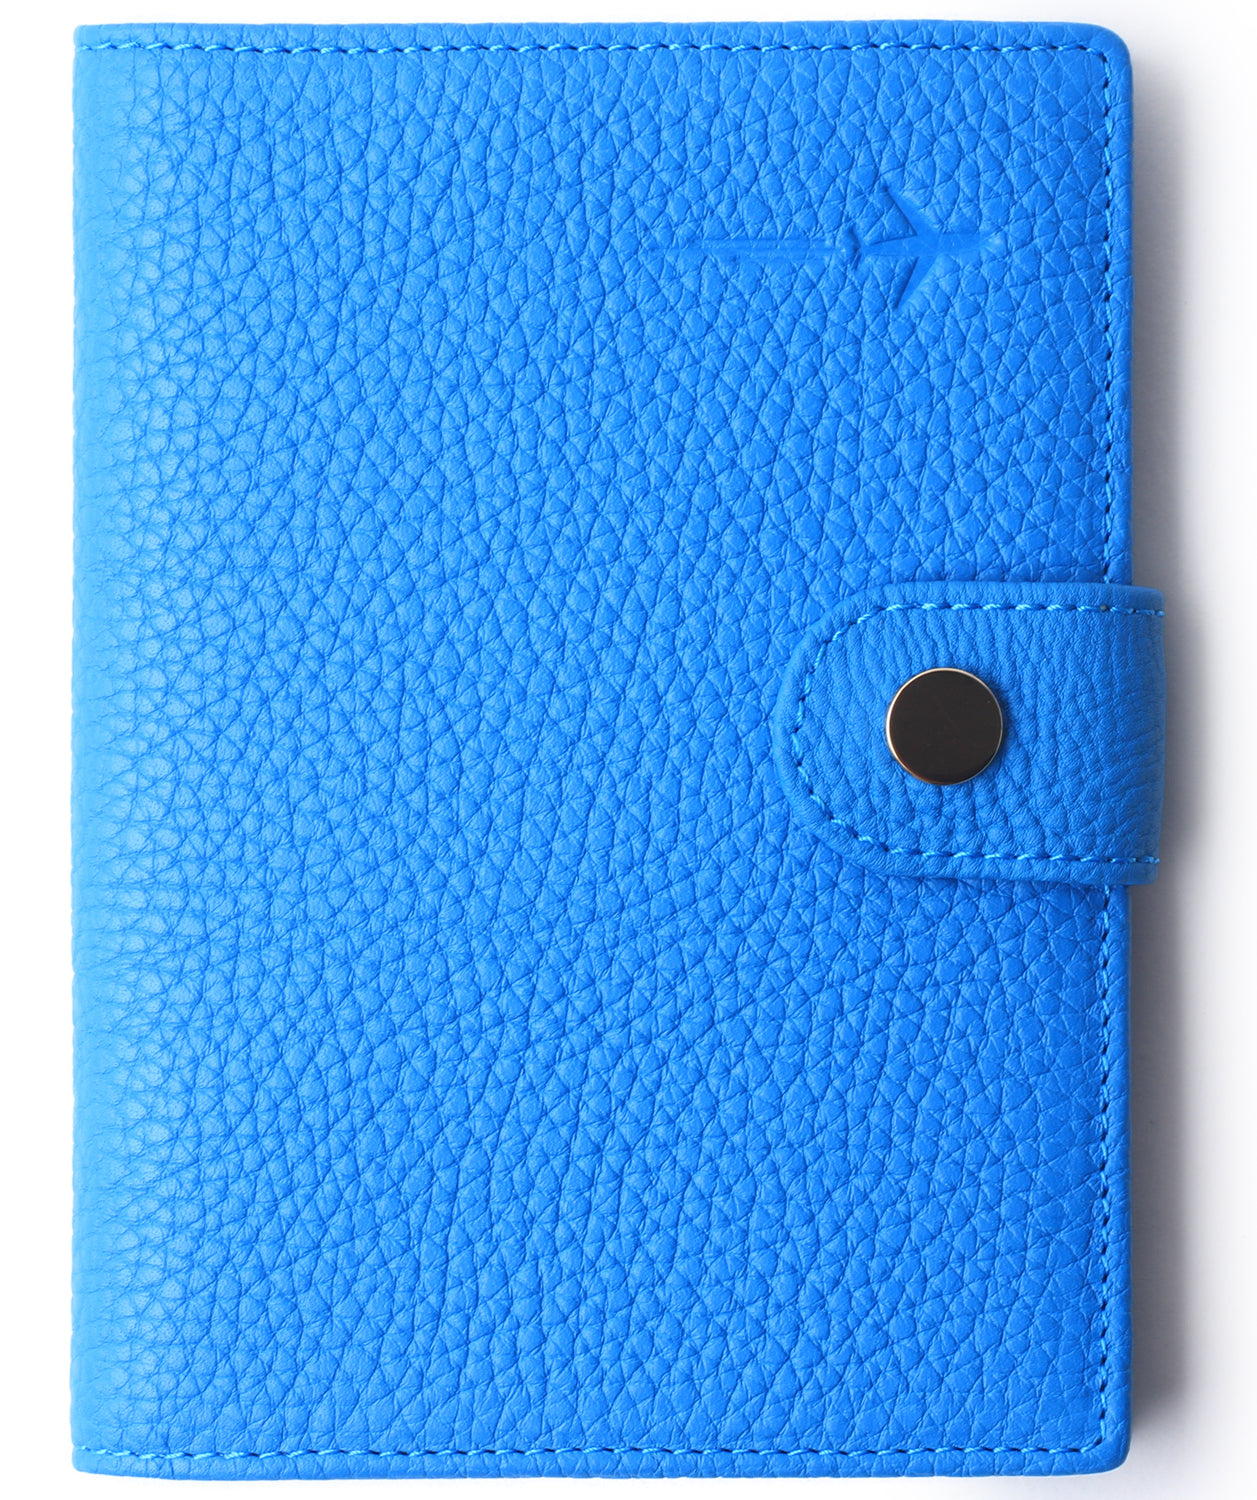 Leather Rfid Blocking Travel Passport Holder Cover Slim ID Card Case Wallet Sapphire Blue - Borgasets